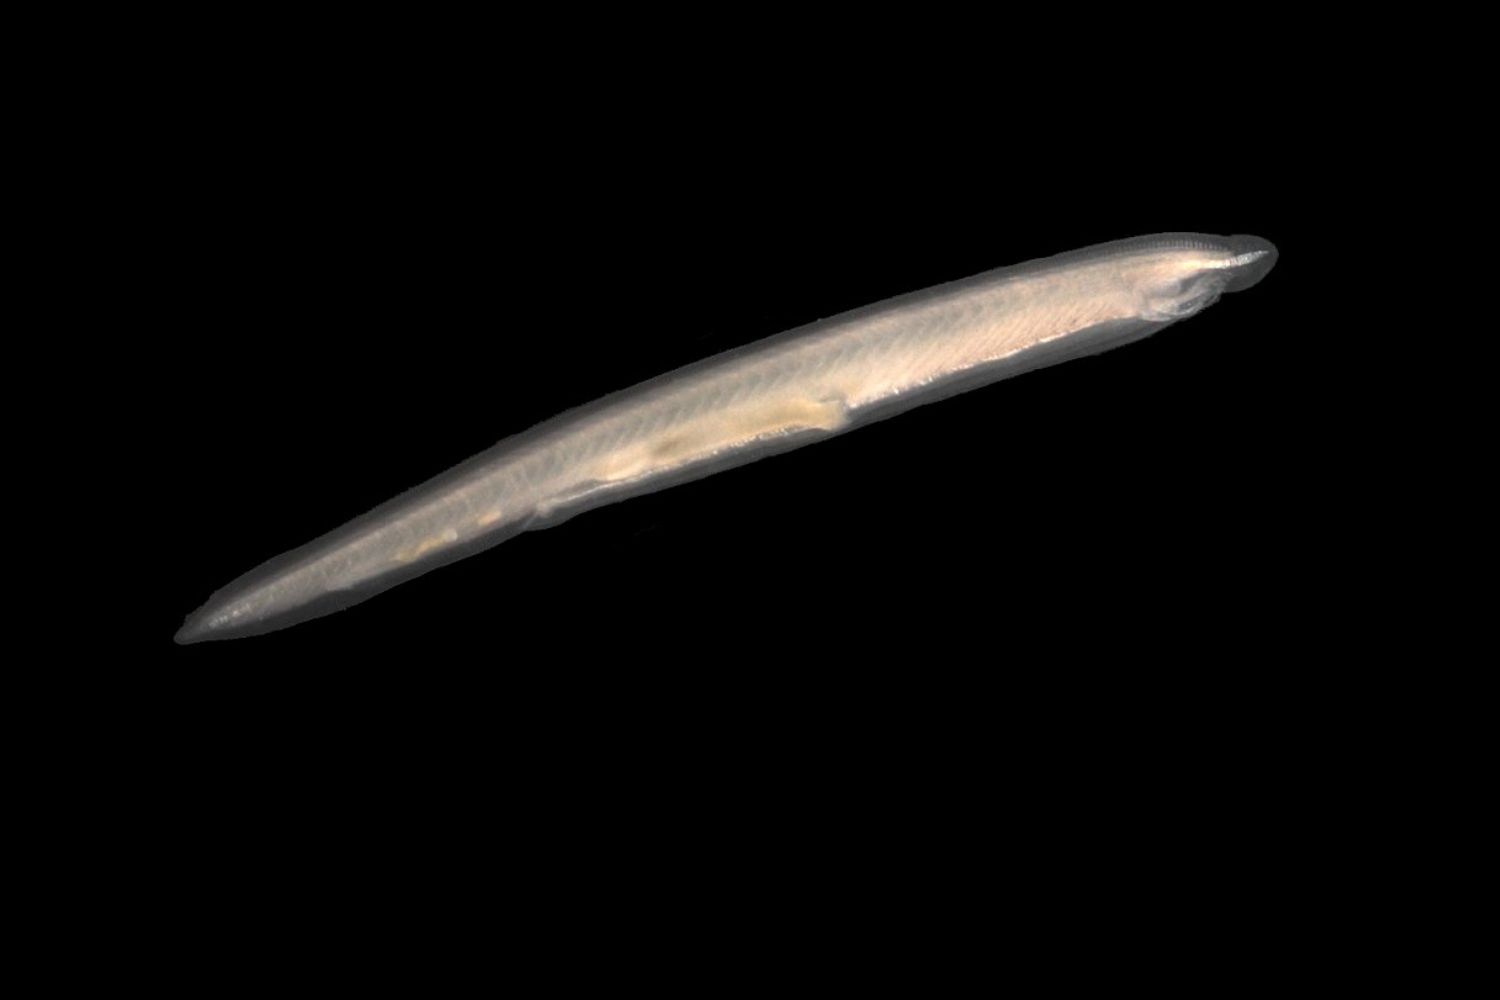 This lancelet (or Amphioxus) specimen was collected in coarse sand sediments on the Belgian continental shelf.